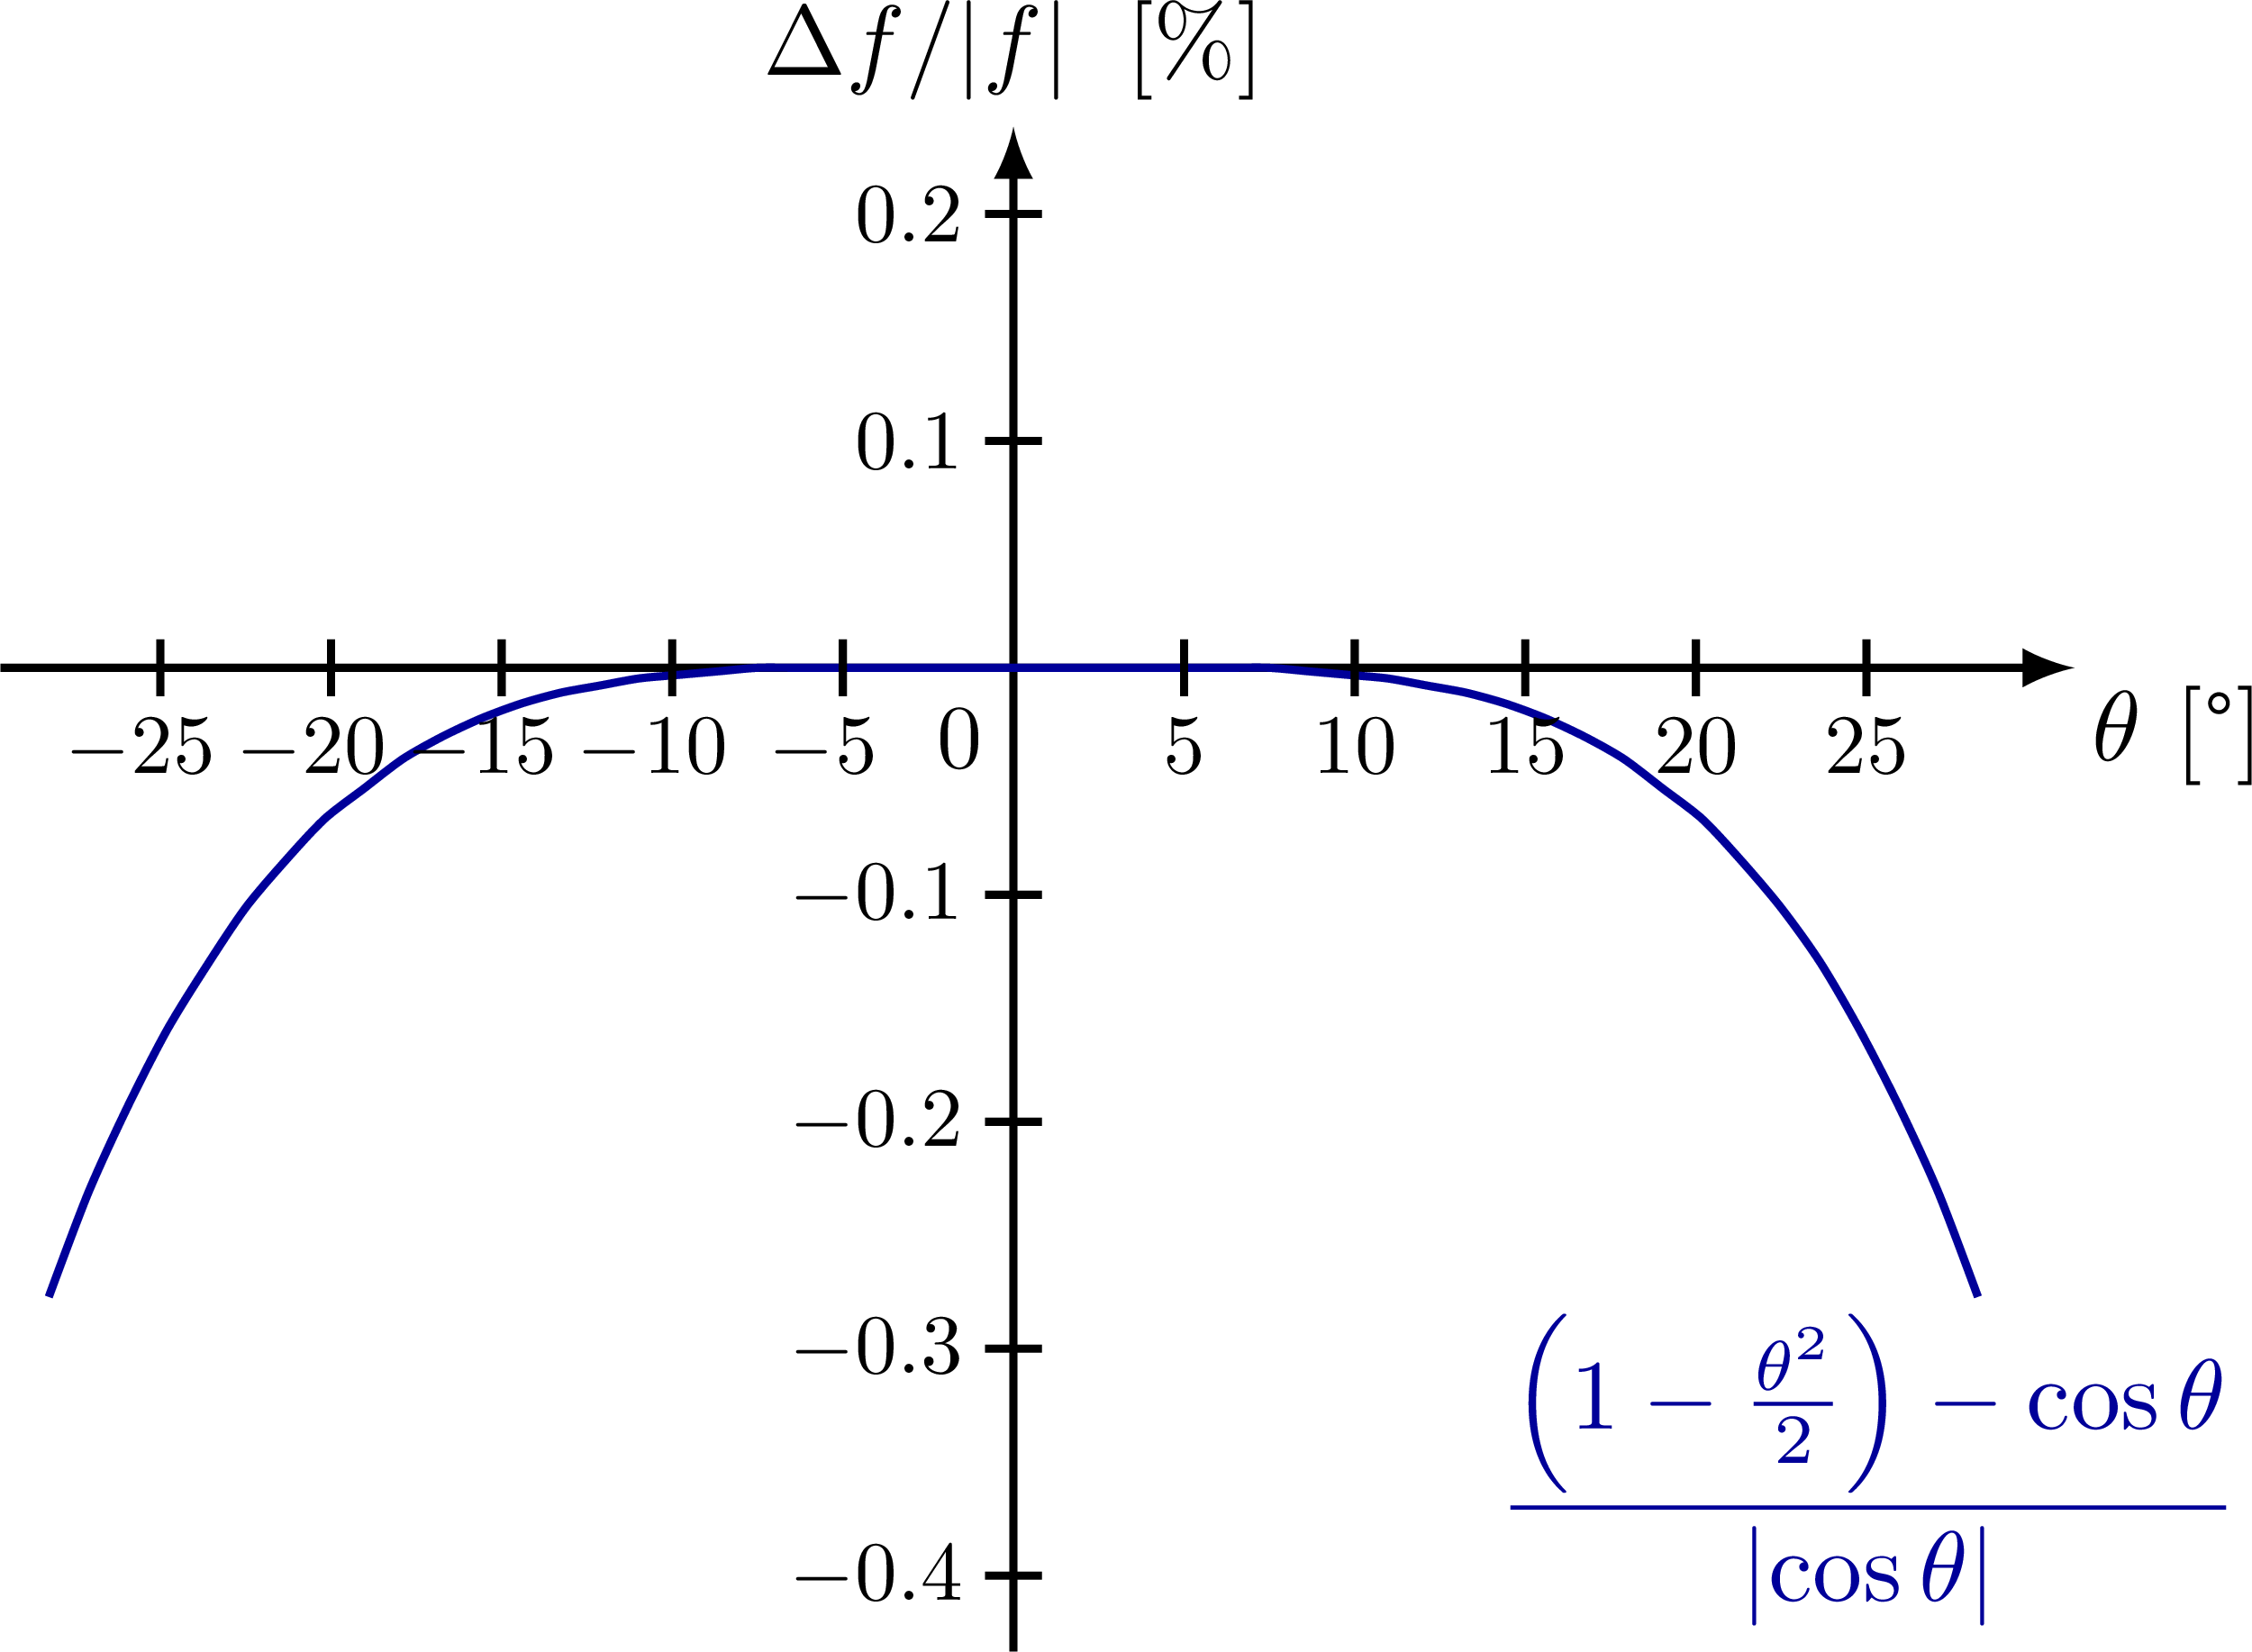 small_angle_approximation-004.png